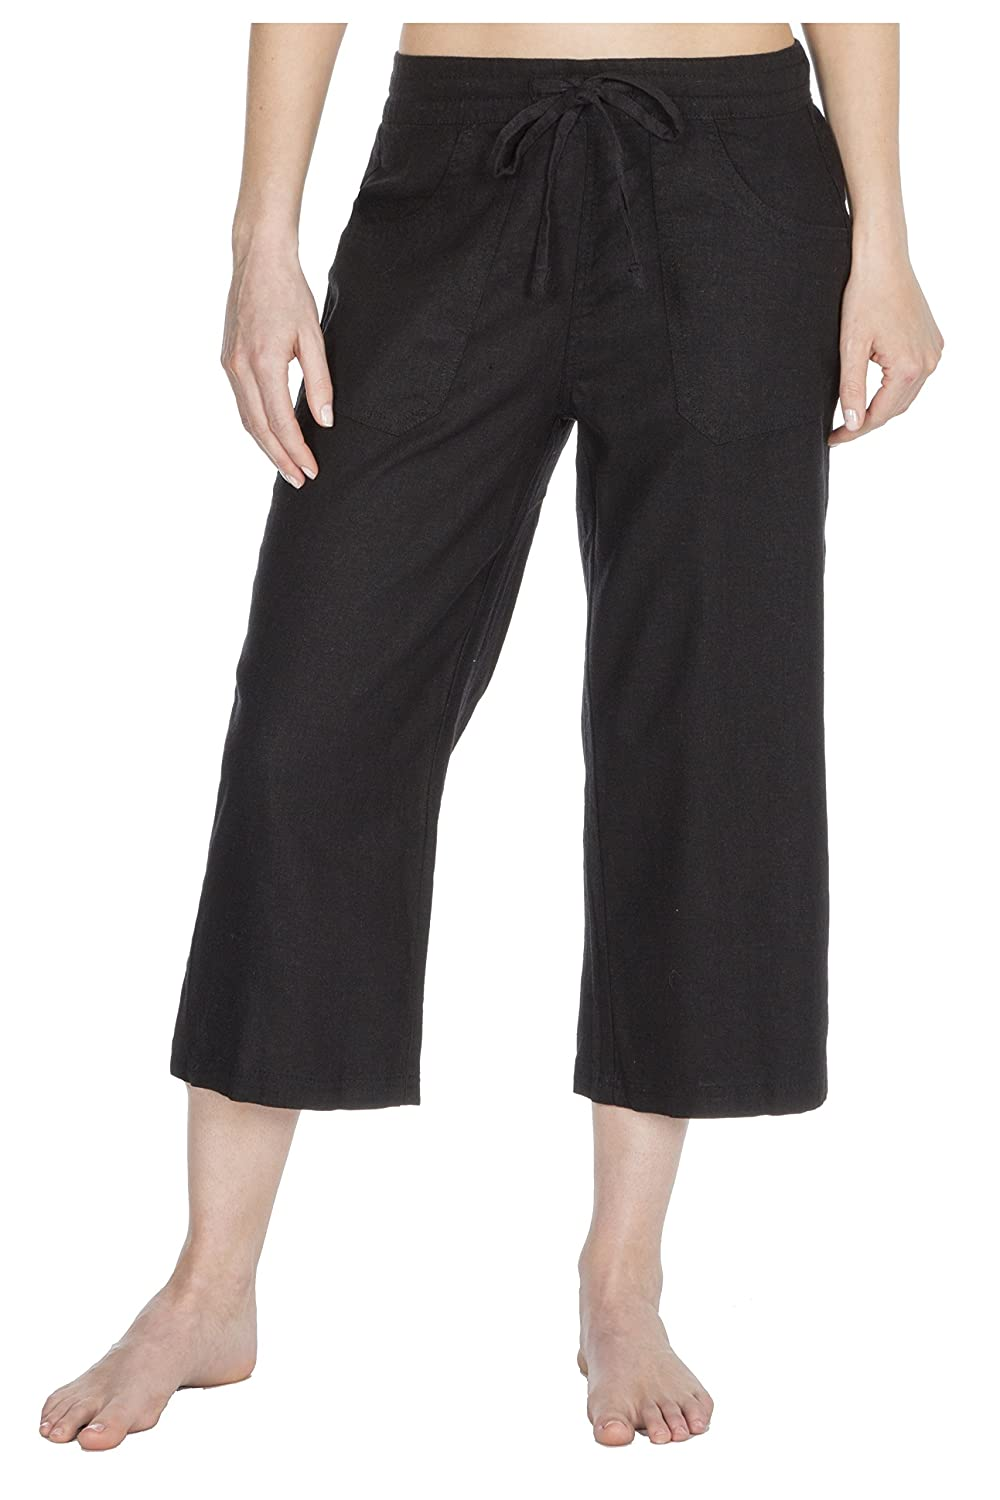 758d3c74cc0447 Causeway Bay Ladies Linen Blend Summer Cropped Trousers/Holiday 3/4 Length  Crops: Amazon.co.uk: Clothing